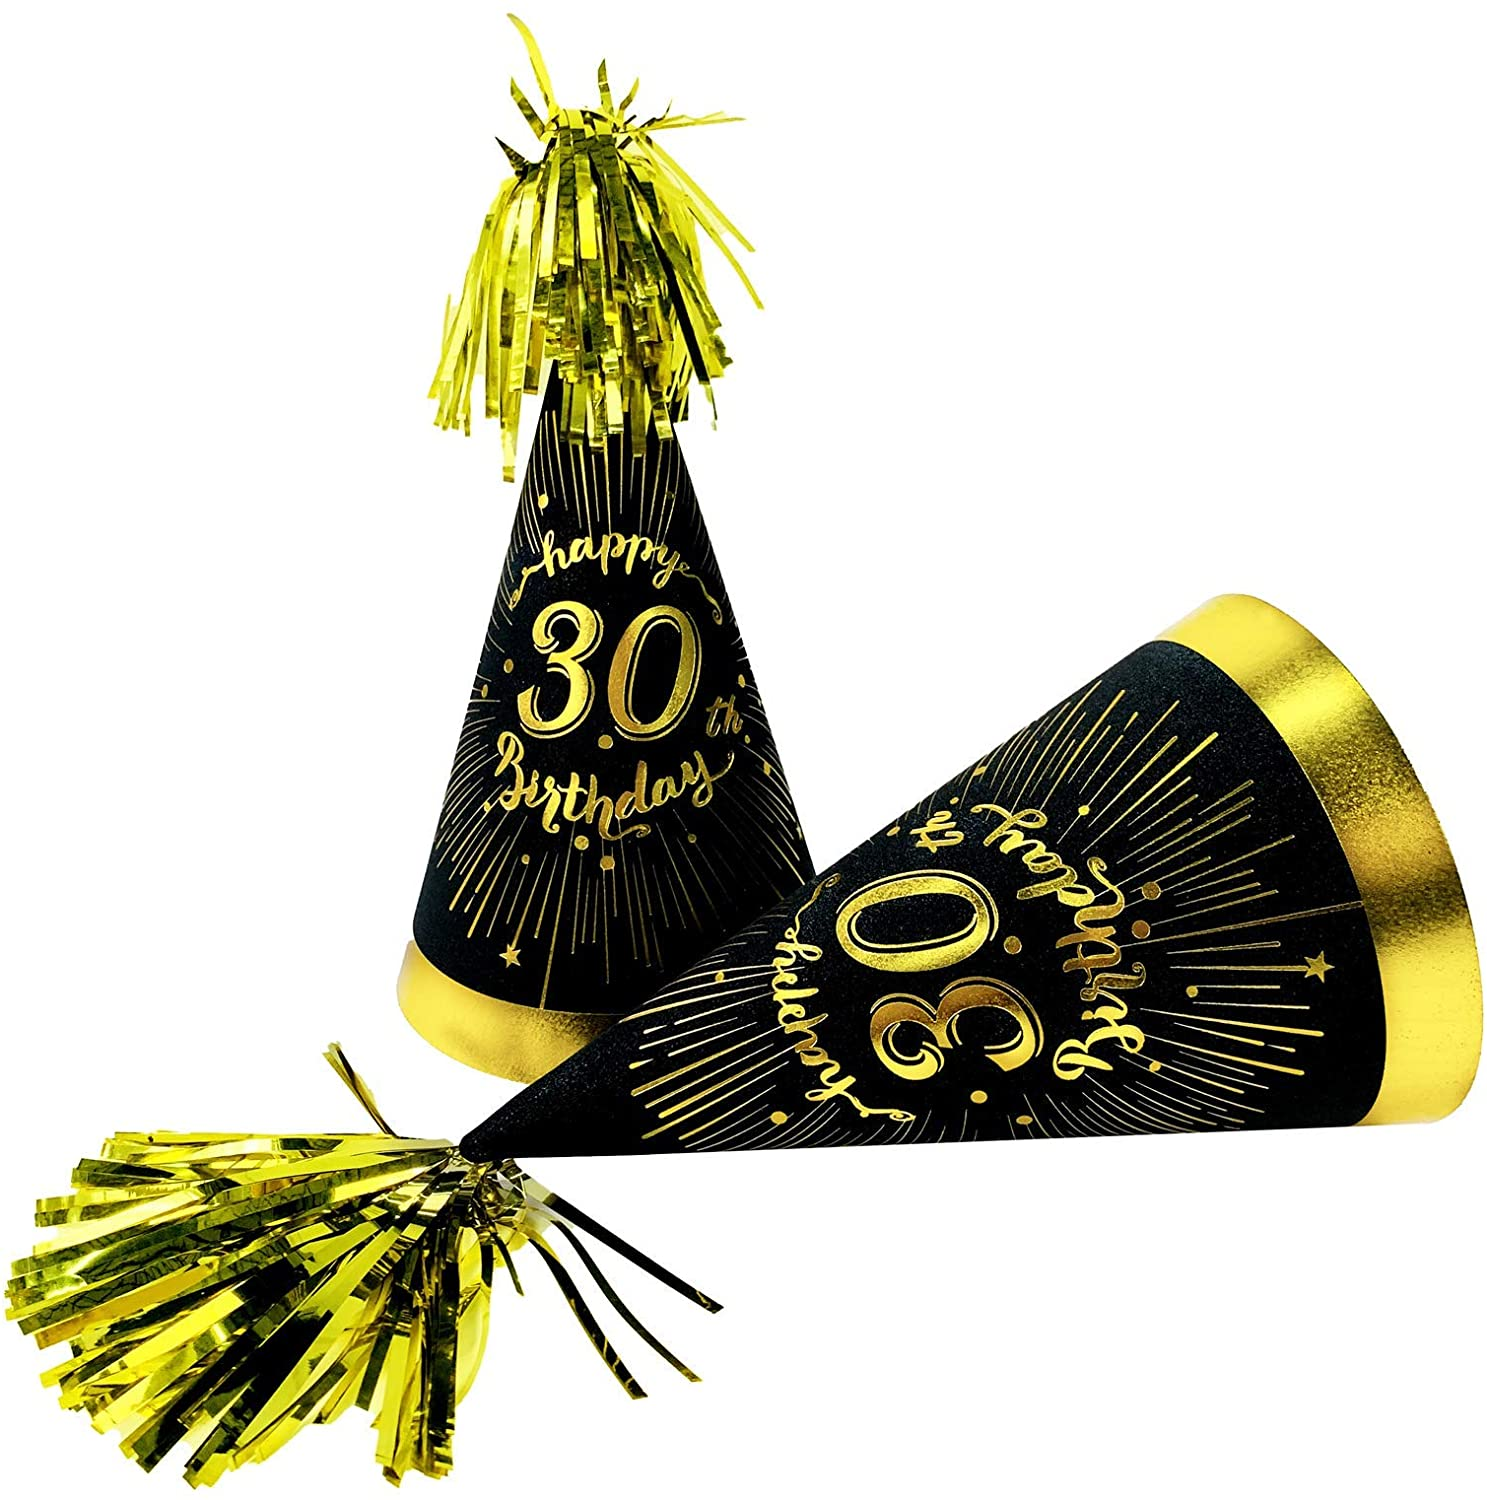 30th birthday decorations for hats - cone hats with gold glitter cardstock, black gold theme 30th birthday party supplies. 30th birthday party favors. 6 Count